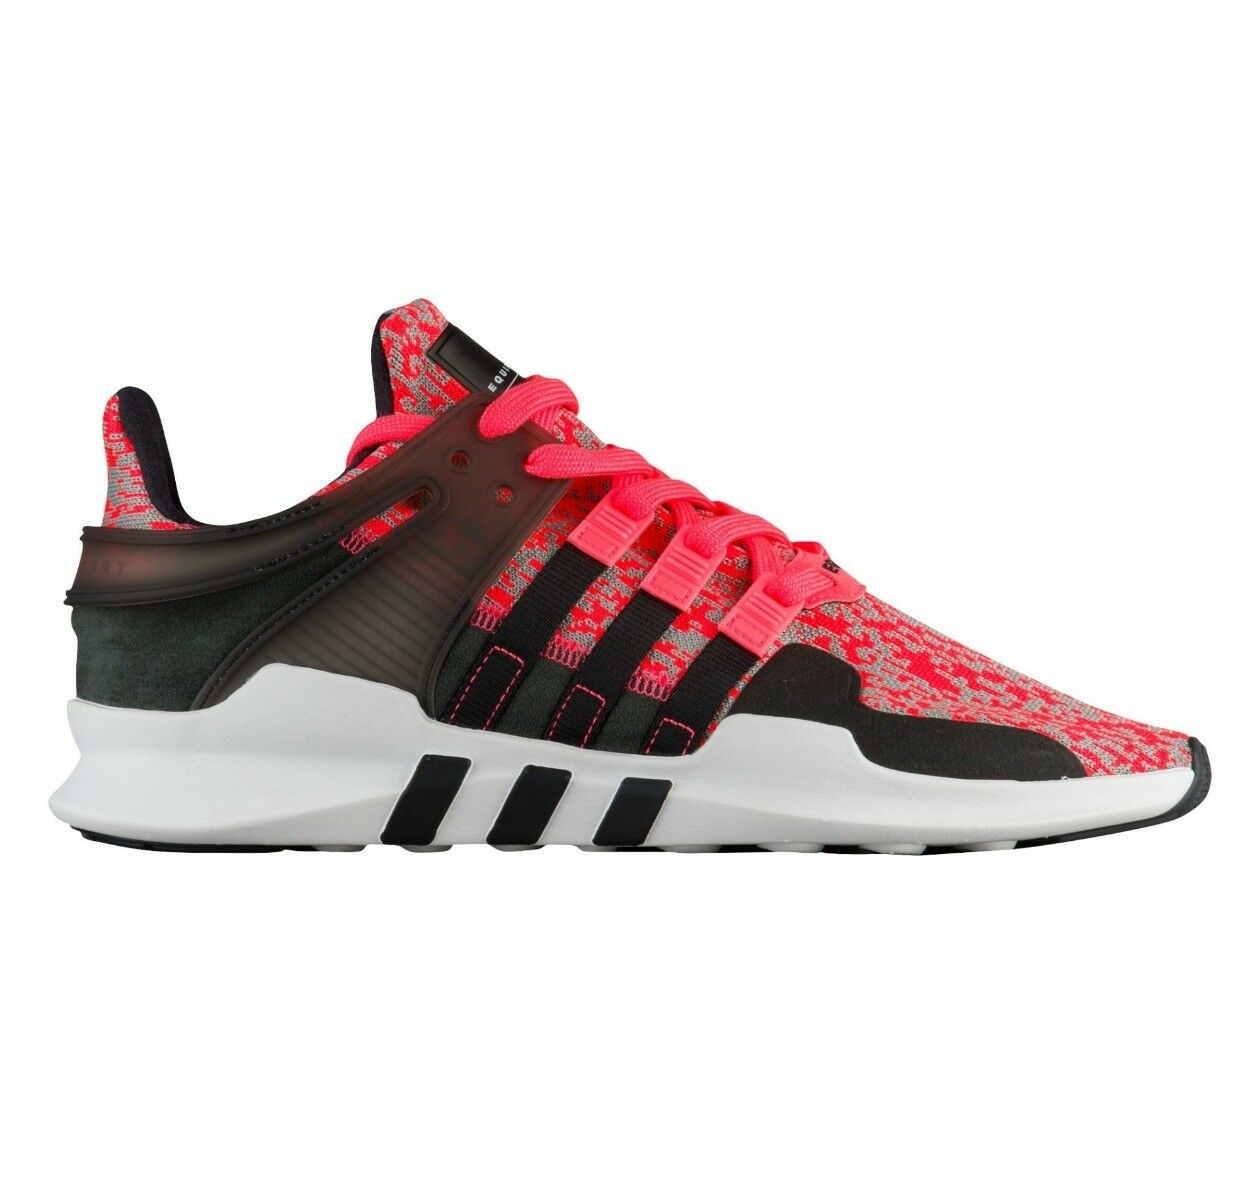 Adidas Equipment Größe Support ADV Trainer UK Größe Equipment 7.5 - 10 Schuhe Run  /- d0bbb8